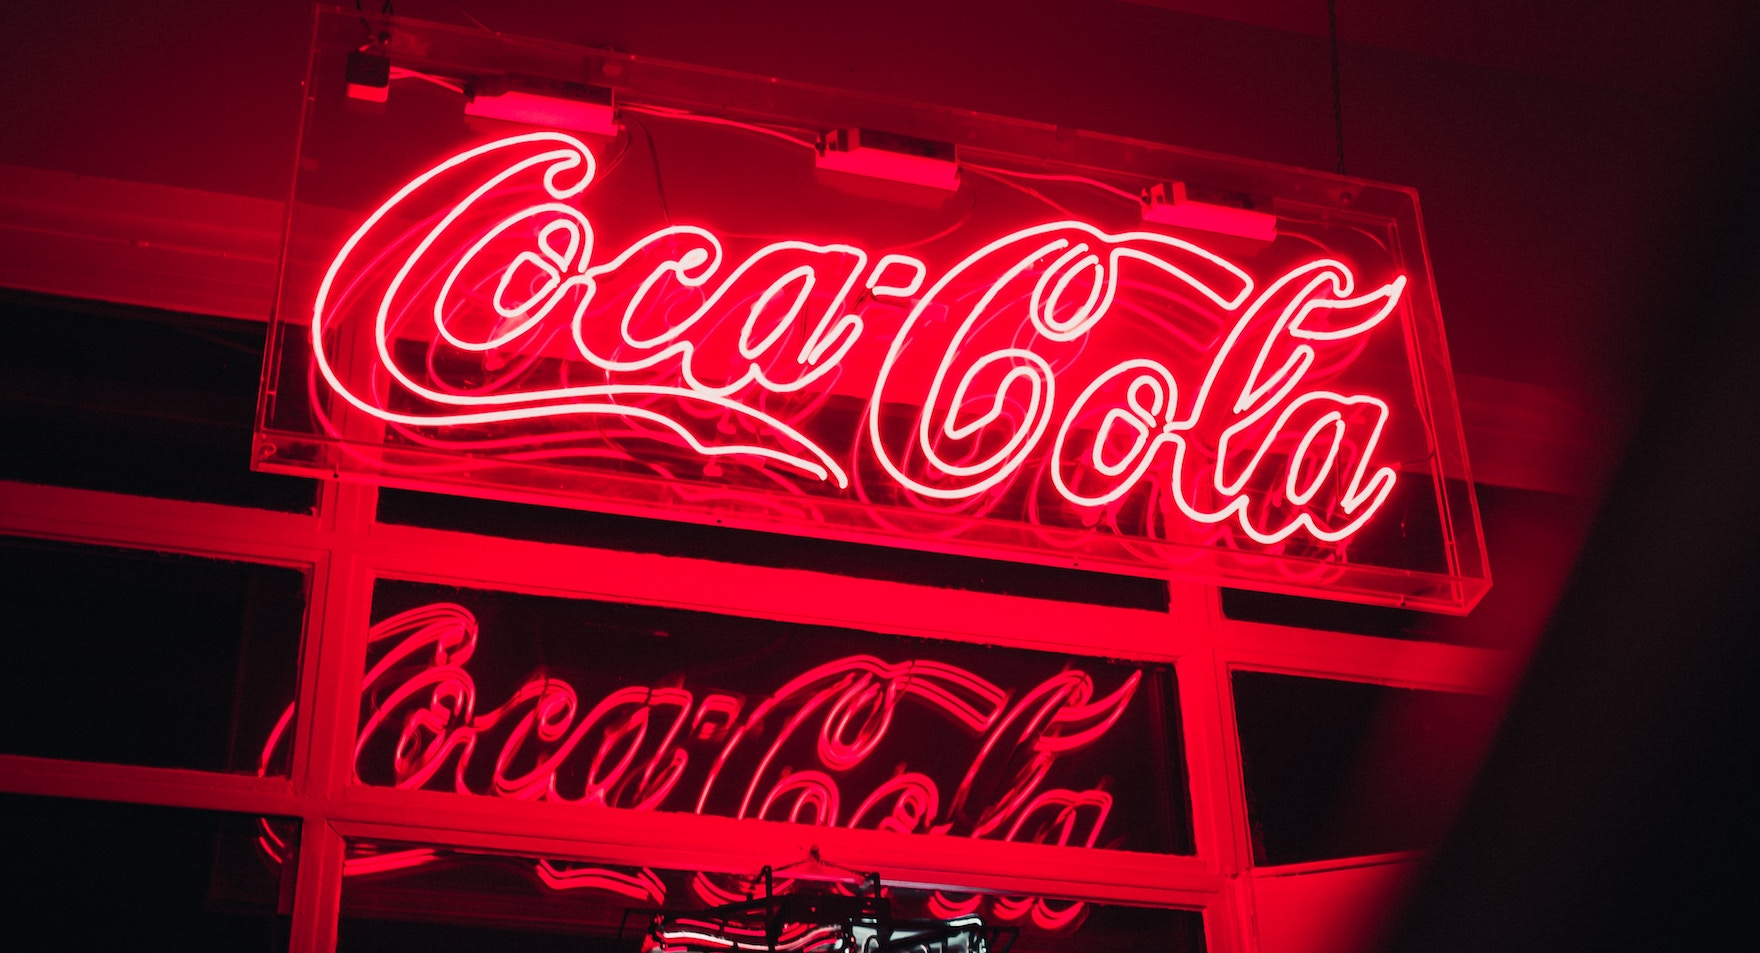 Multi-channel targeting, using Coca Cola's audience